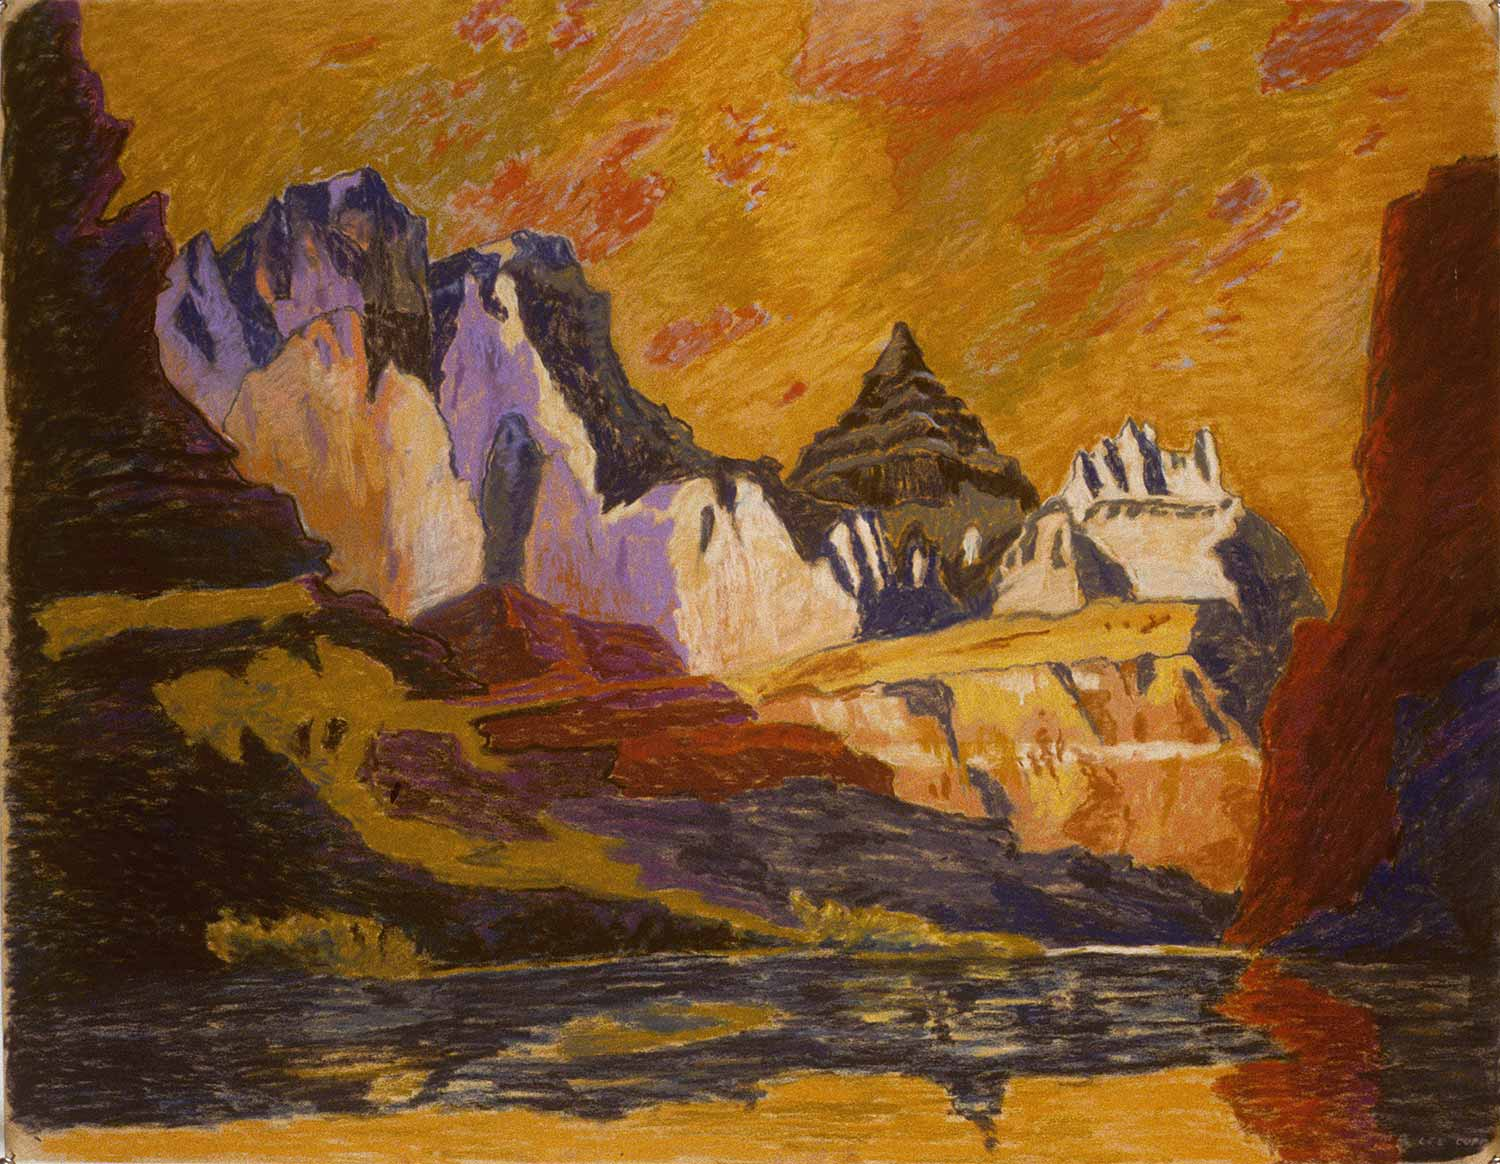 Grand Canyon #12, Oil pastel on paper by Mary Alice Copp